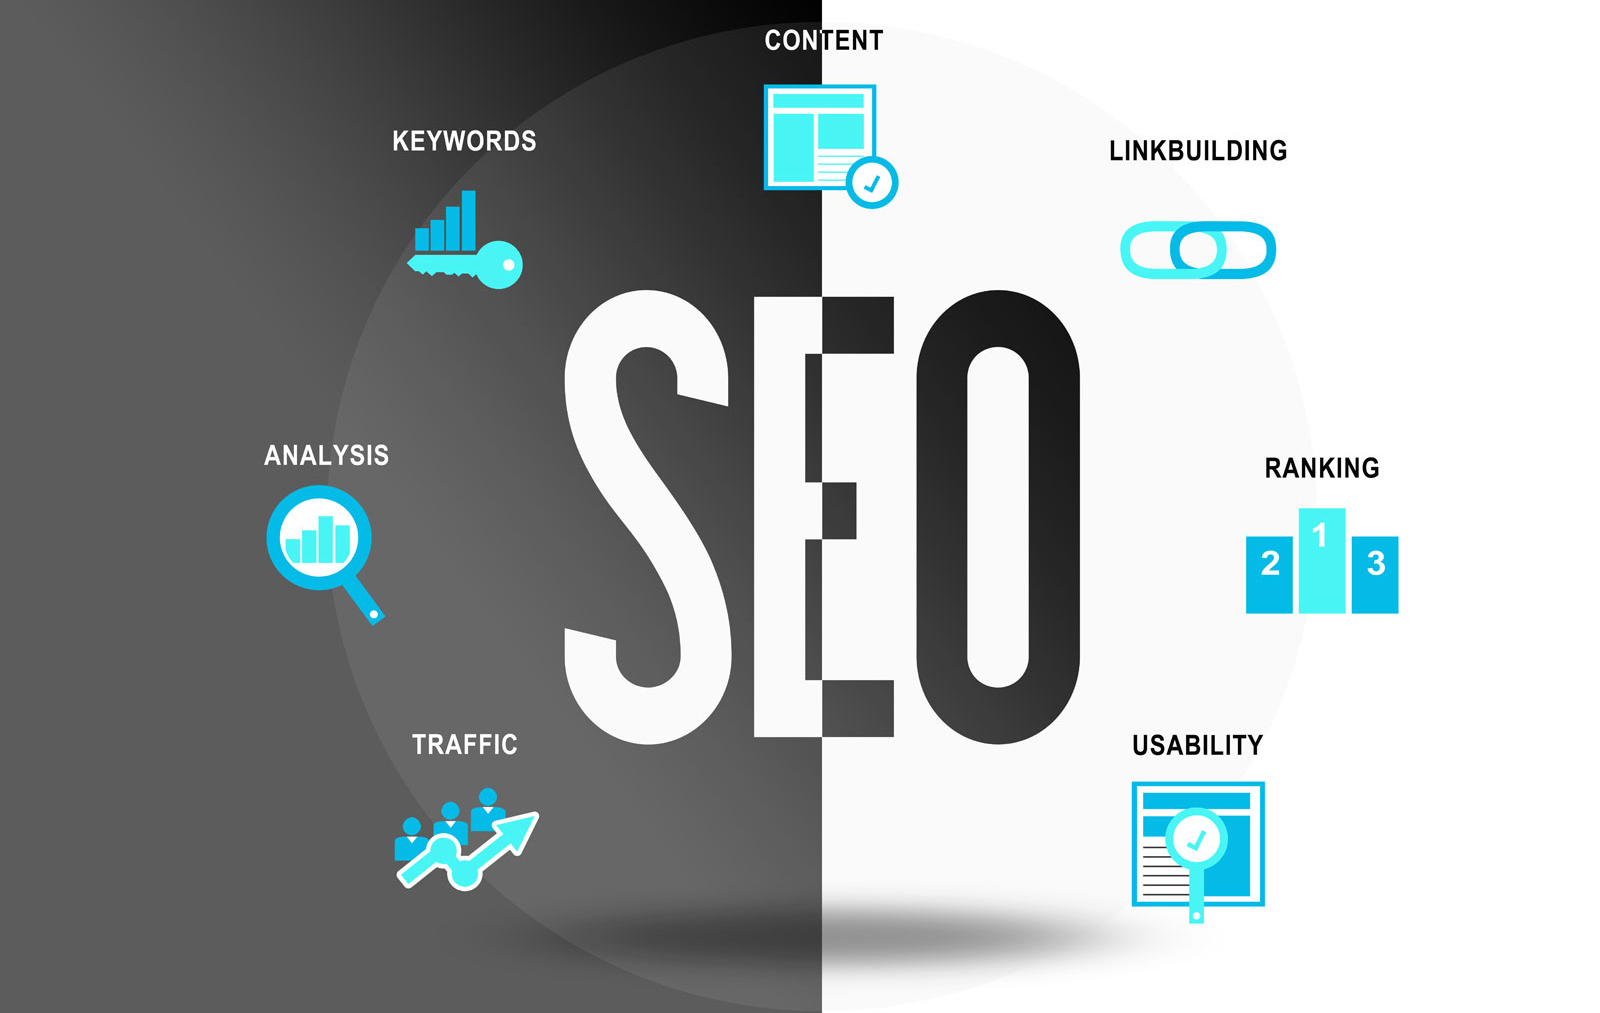 SEO - Content, Linkbuilding, Ranking, Usability, Traffic, Analysis, Keywords